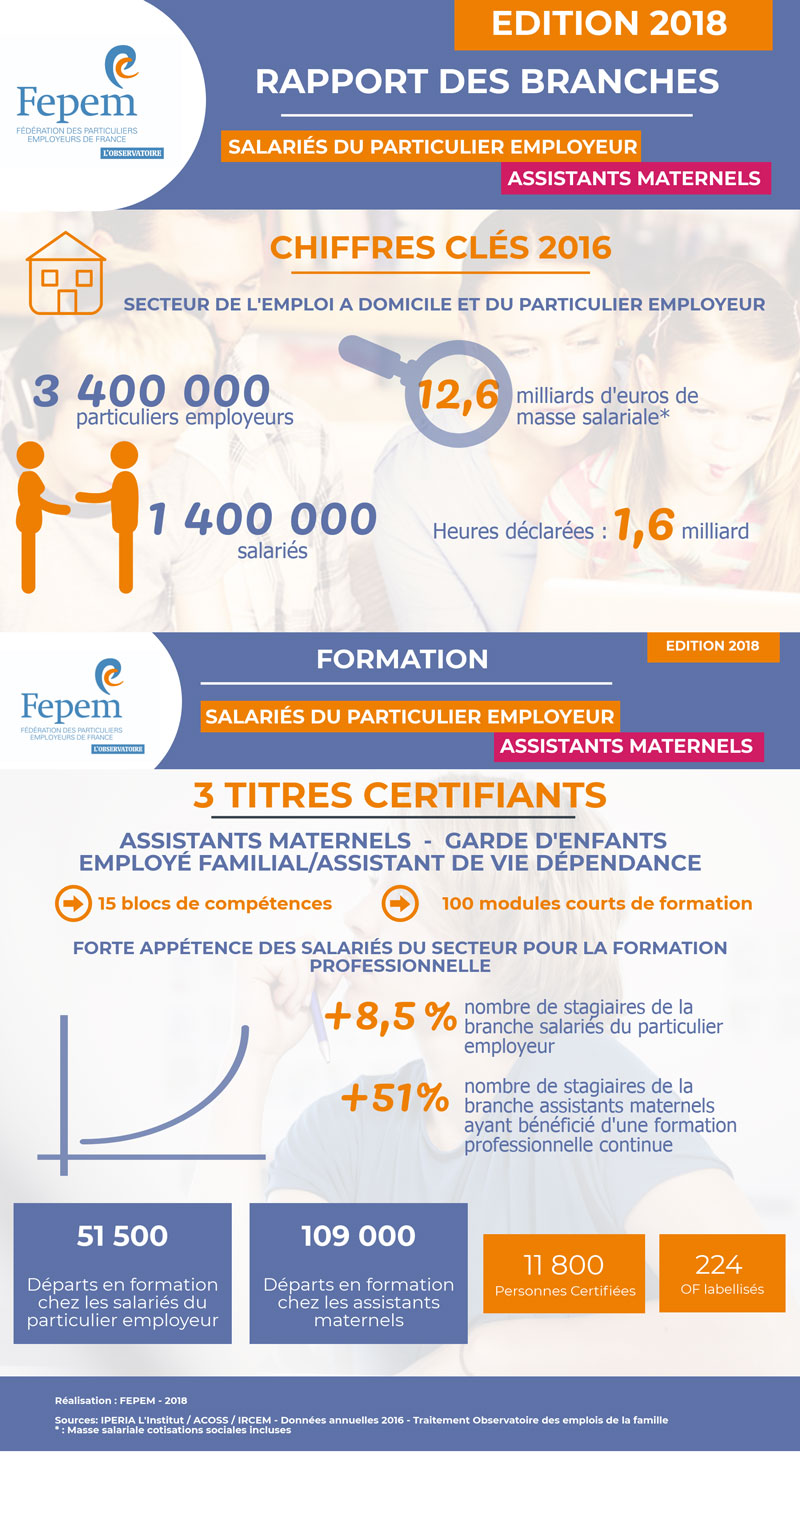 Infographie-rapport-des-branches Fepem